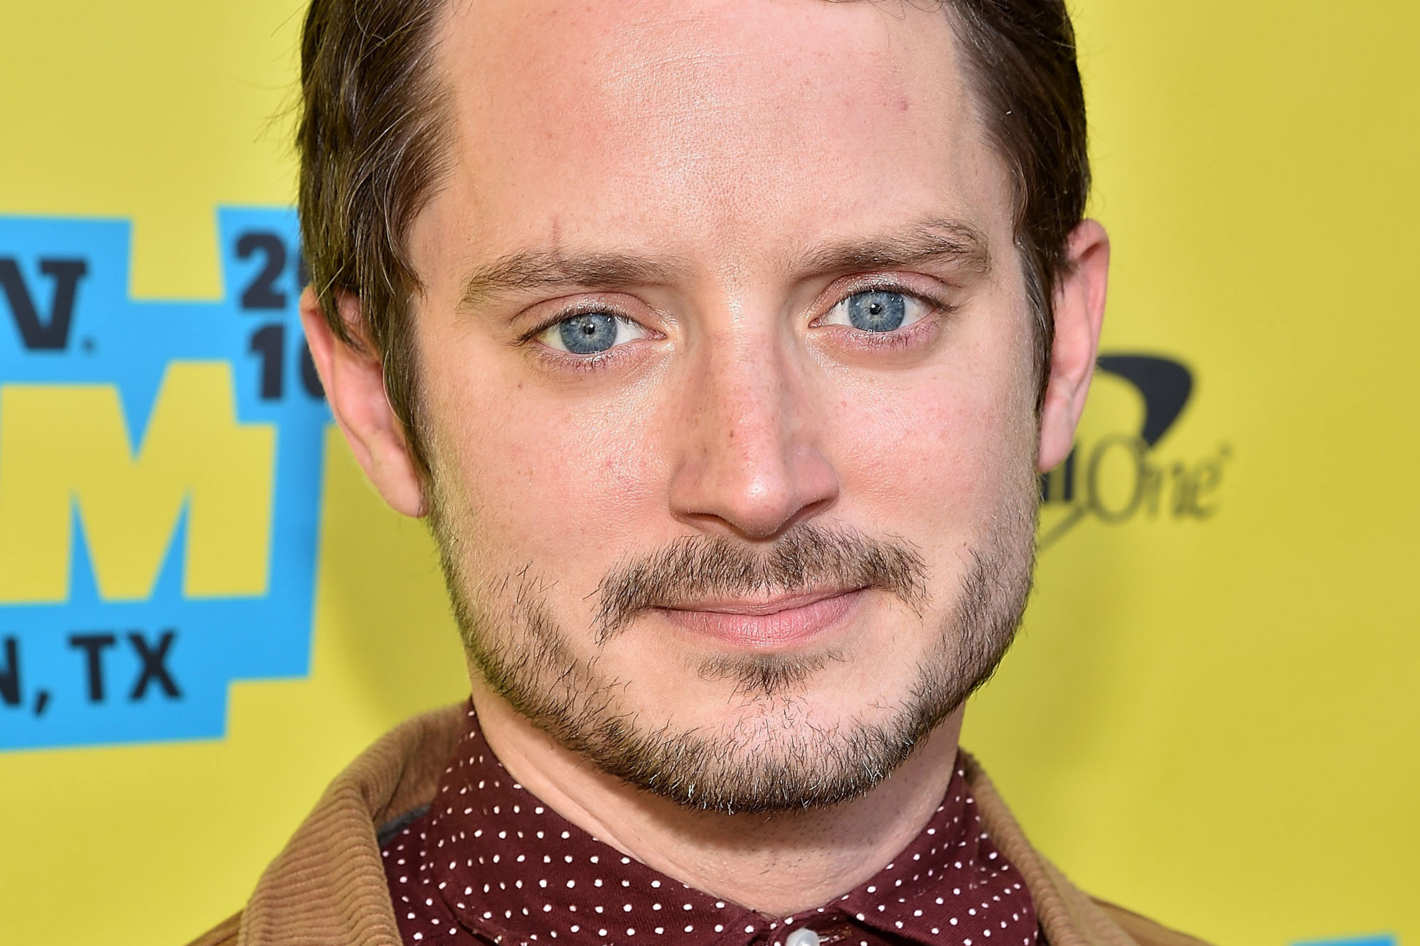 Elijah Wood took part in the creation of a video game 12/09/2013 92